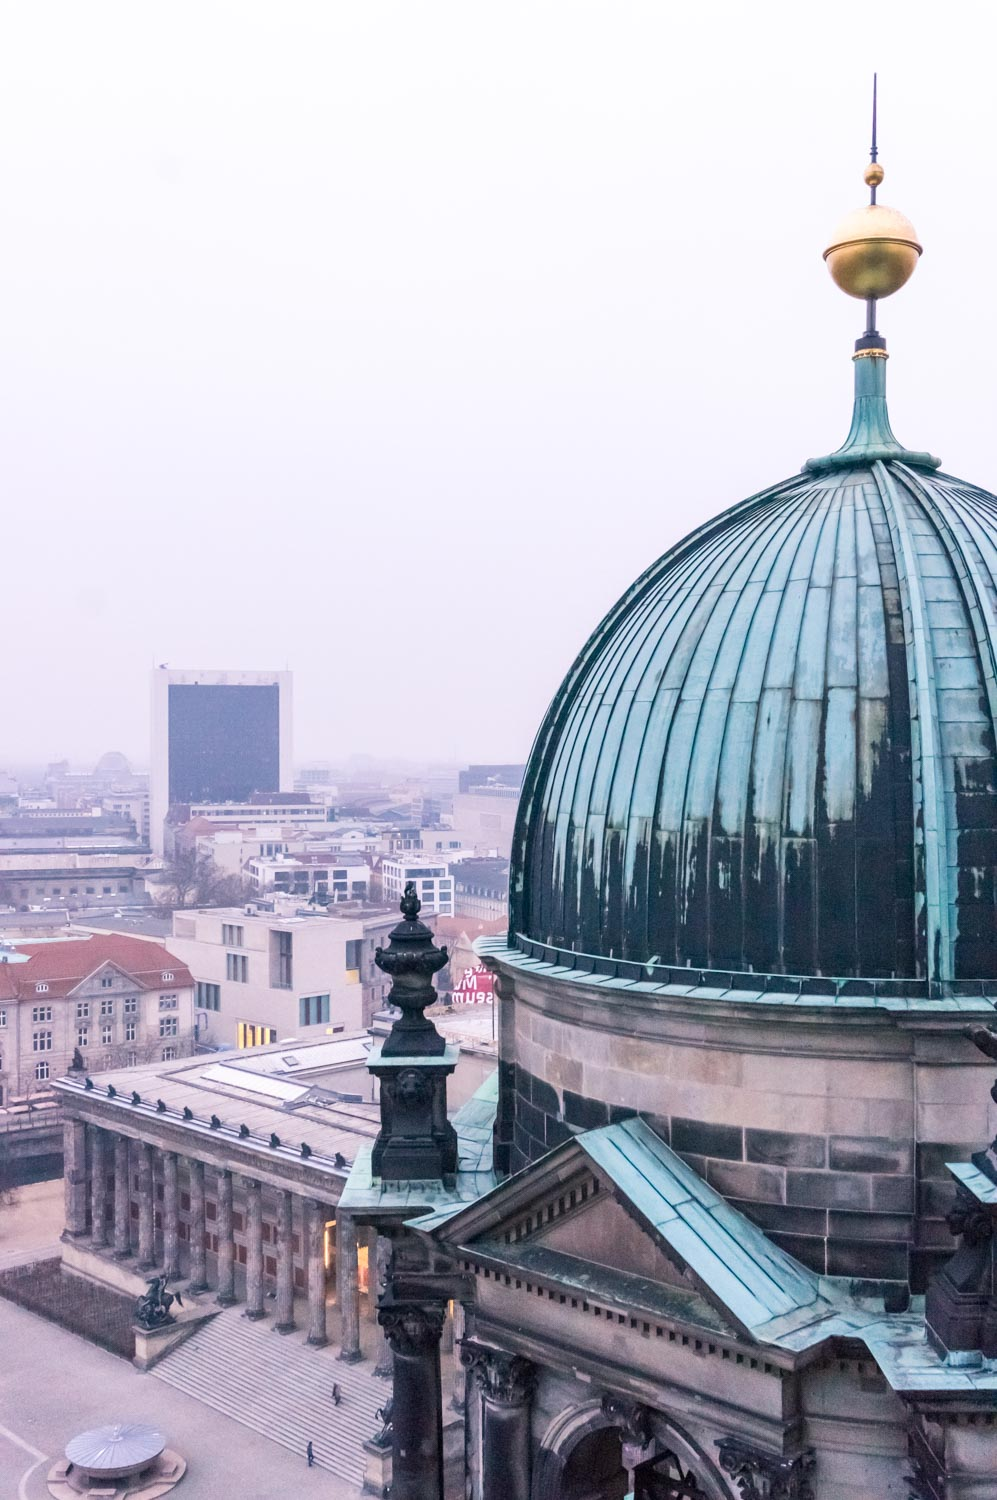 From the top of Berliner Dom